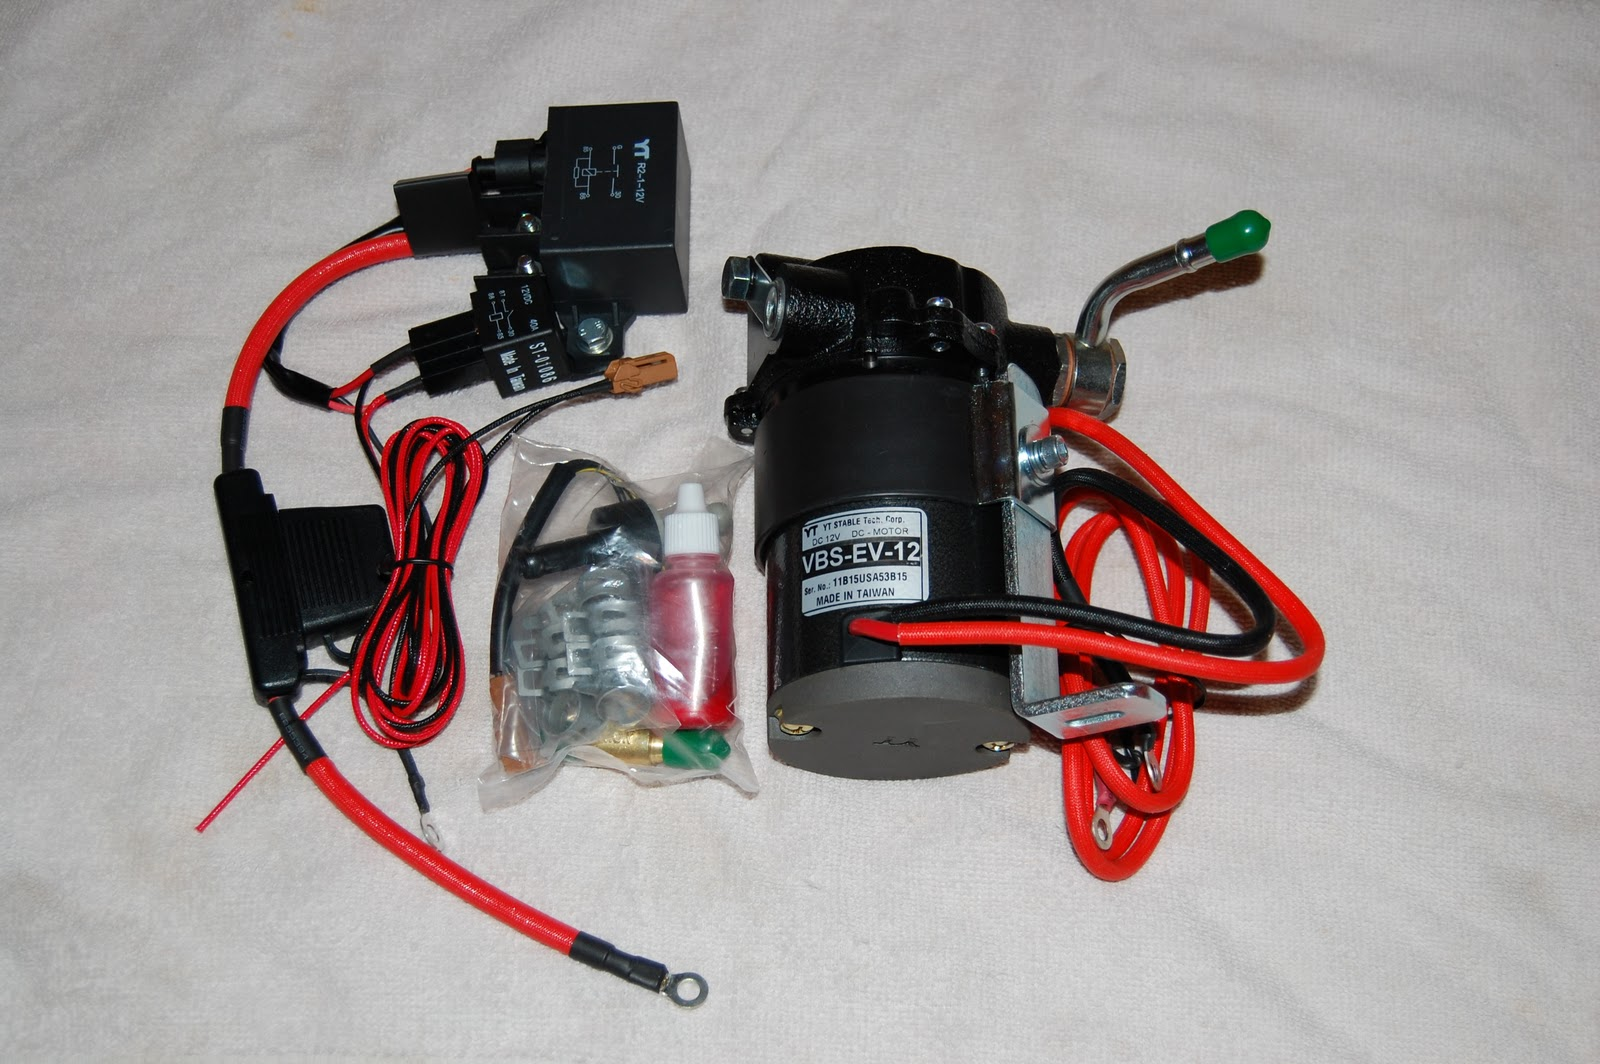 Electric Porsche: kes on vacuum pump thermostat, vacuum pump flow diagram, vacuum pump plug, vacuum pump brakes, vacuum pump volvo, vacuum pump operation, vacuum pump capacitor, vacuum control diagram, vacuum pump system, vacuum pump body, vacuum pump installation, centrifugal pump diagram, vacuum pump trouble shooting, vacuum pump switch, vacuum pump repair, vacuum pump connector, liquid ring vacuum pump diagram, vacuum pump hose, vacuum pump honda, vacuum pump drawing,